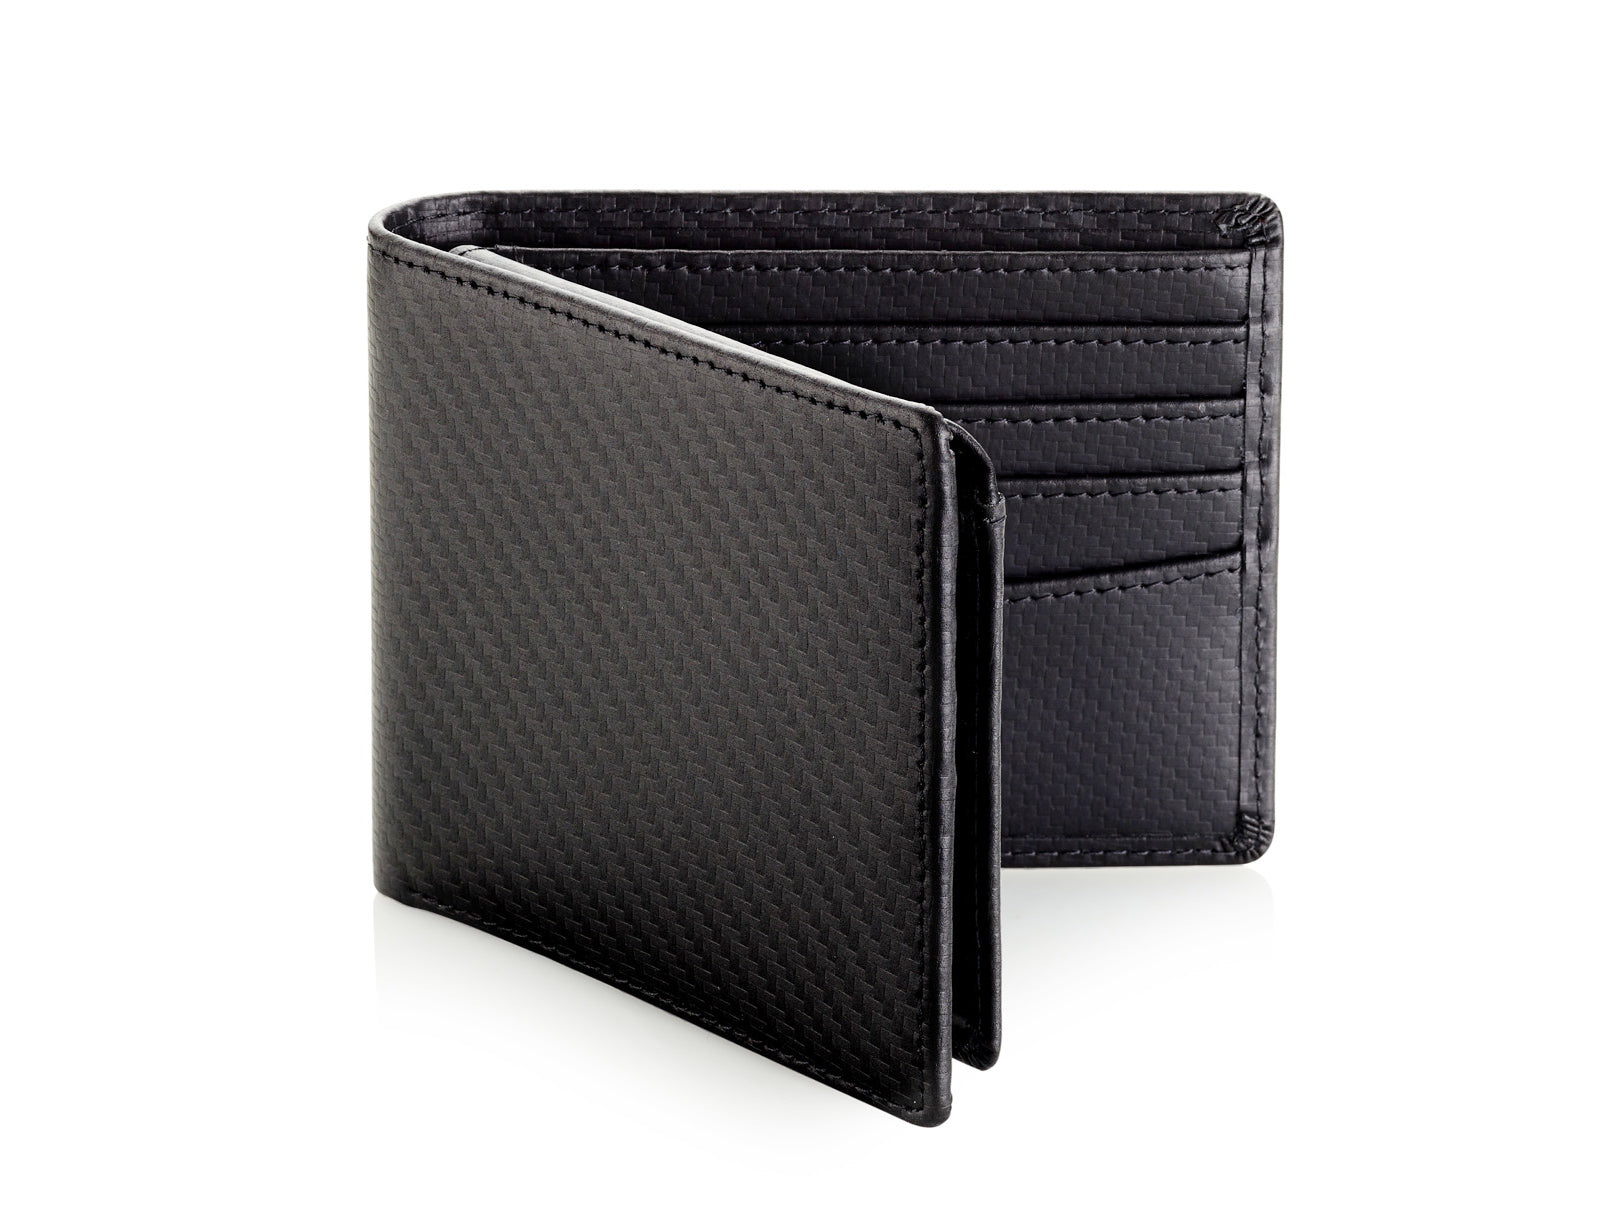 Carbon Fiber Wallet for Men With ID Window and RFID Blocking